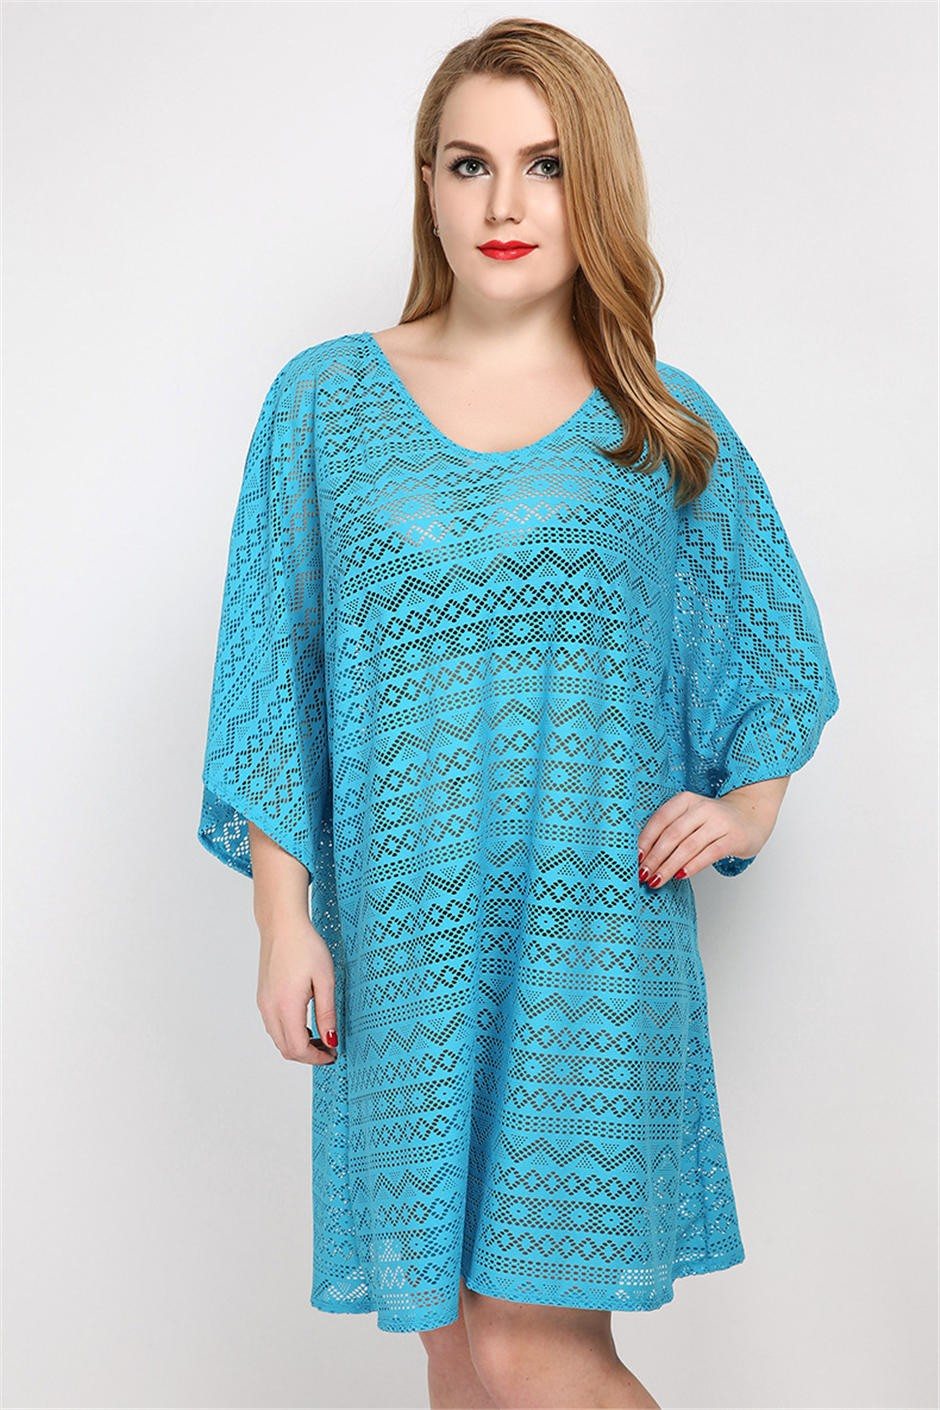 17 Solid Women Cover up Crochet Loose Bathing suit One piece Swimsuit Female Sexy Beach blouse Hollow out knitting Cover-ups 5